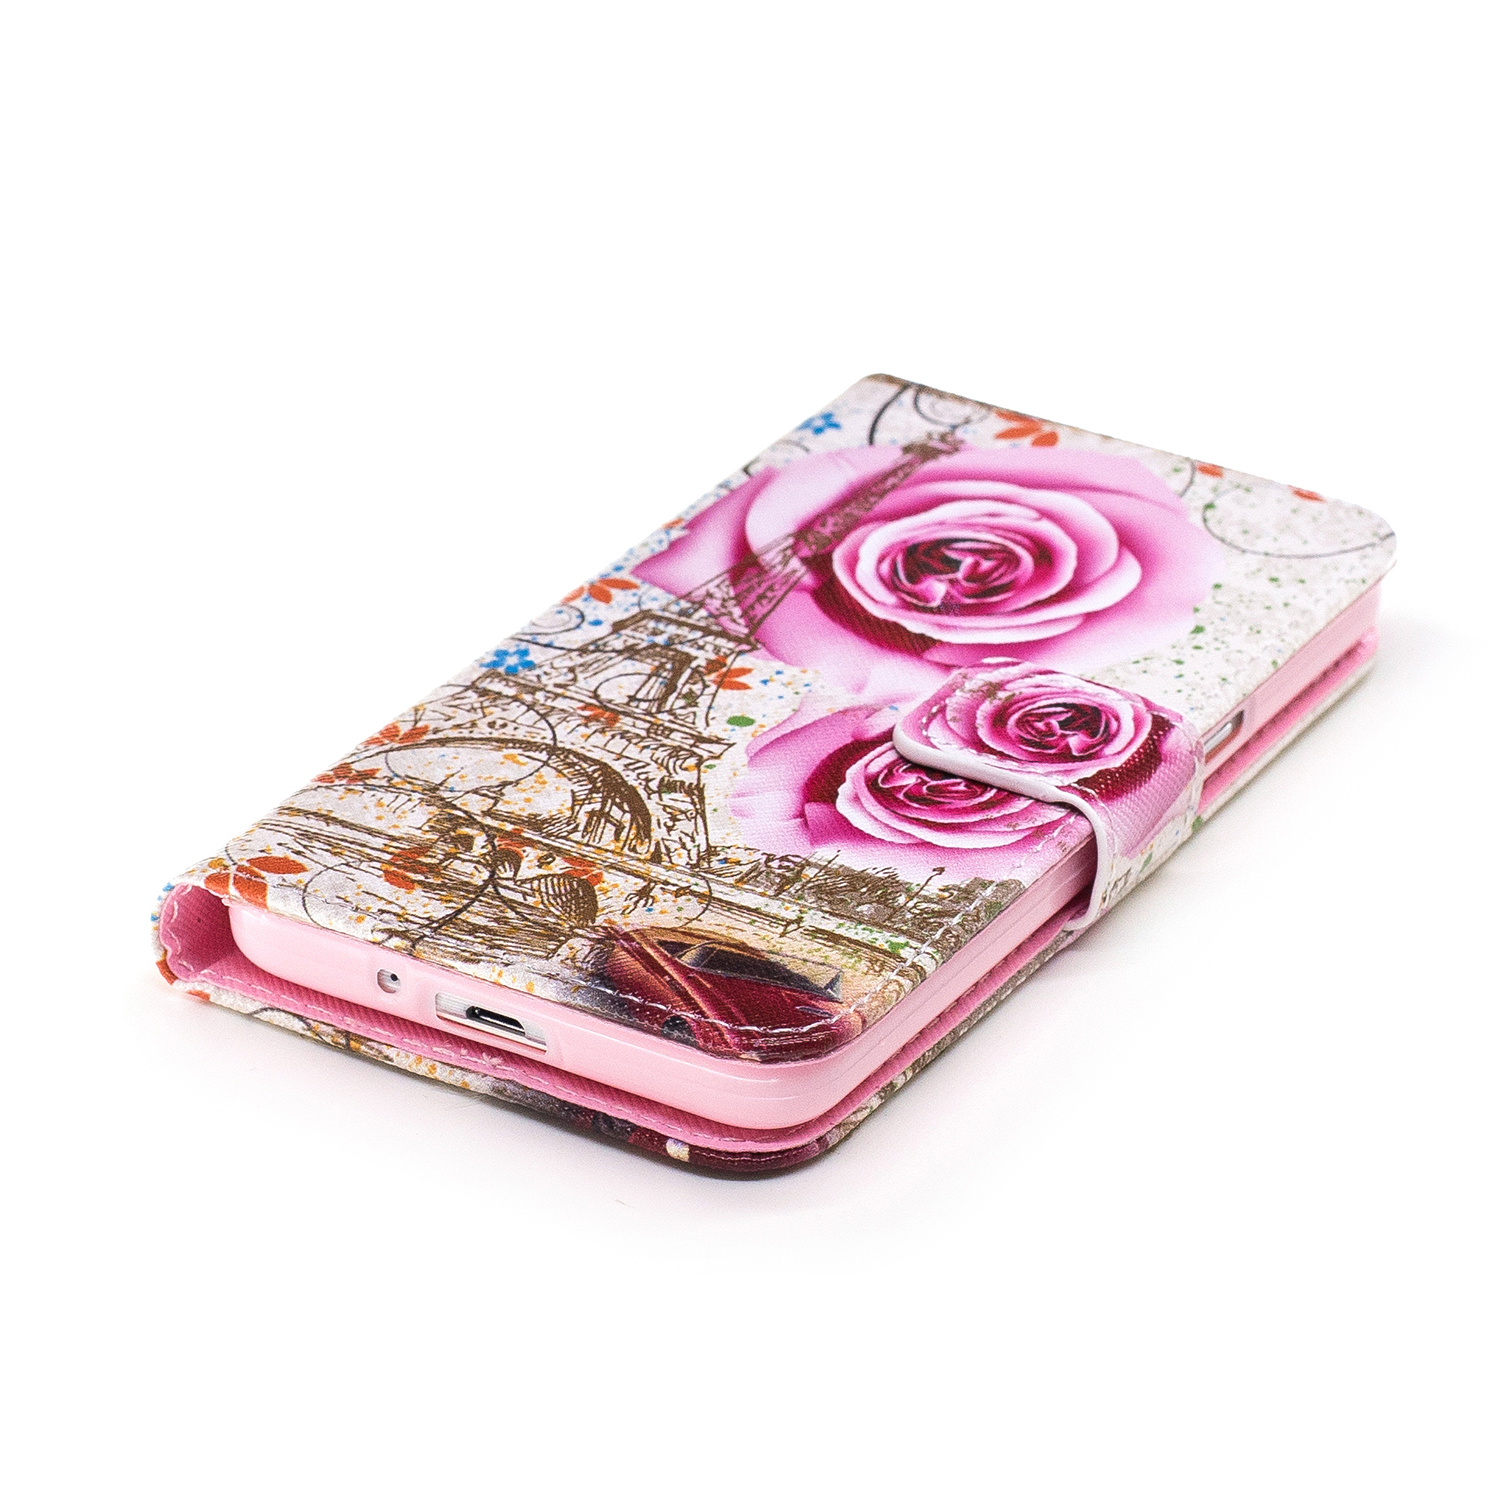 Flower Leather Phone Case For Samsung Galaxy Grand Prime G530 G530H G5308W DUOS G531 G531H SM G531F Cover Flip Wallet Bag Holder